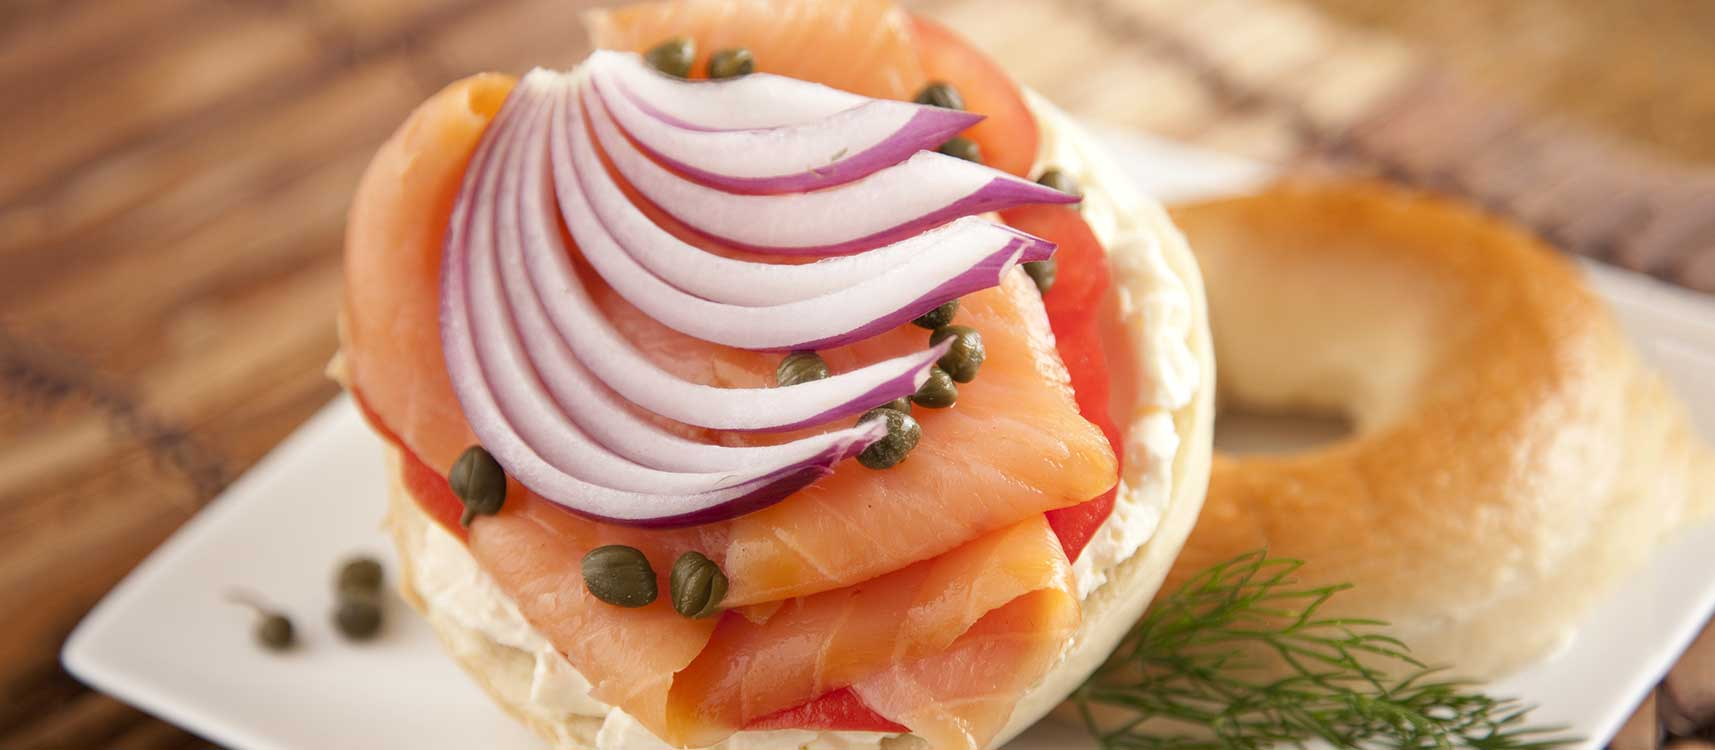 Gill's Onions - Salmon Bagel Recipe